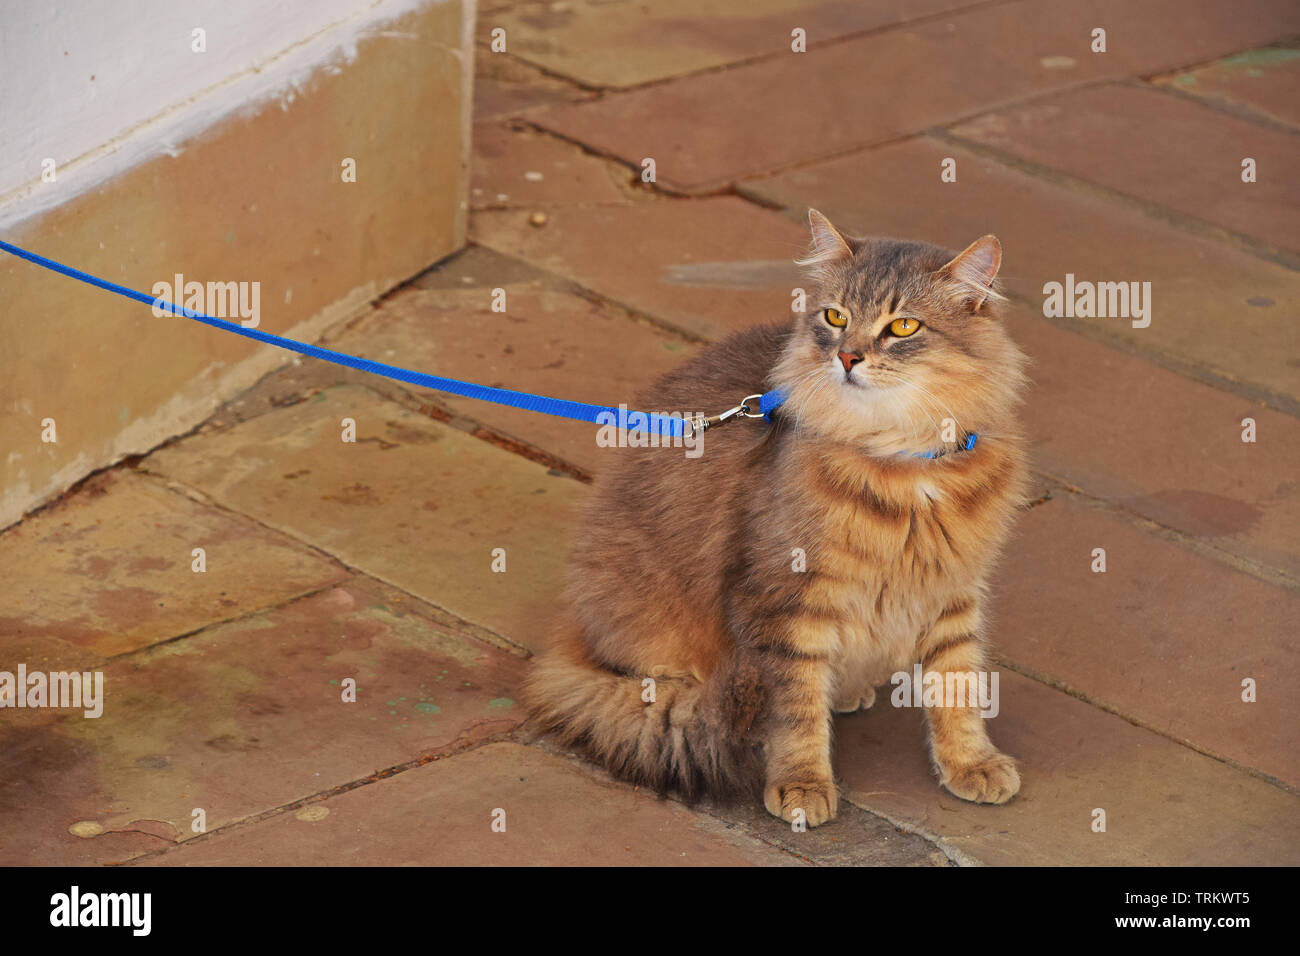 Cat On Lead Stock Photos & Cat On Lead Stock Images - Alamy